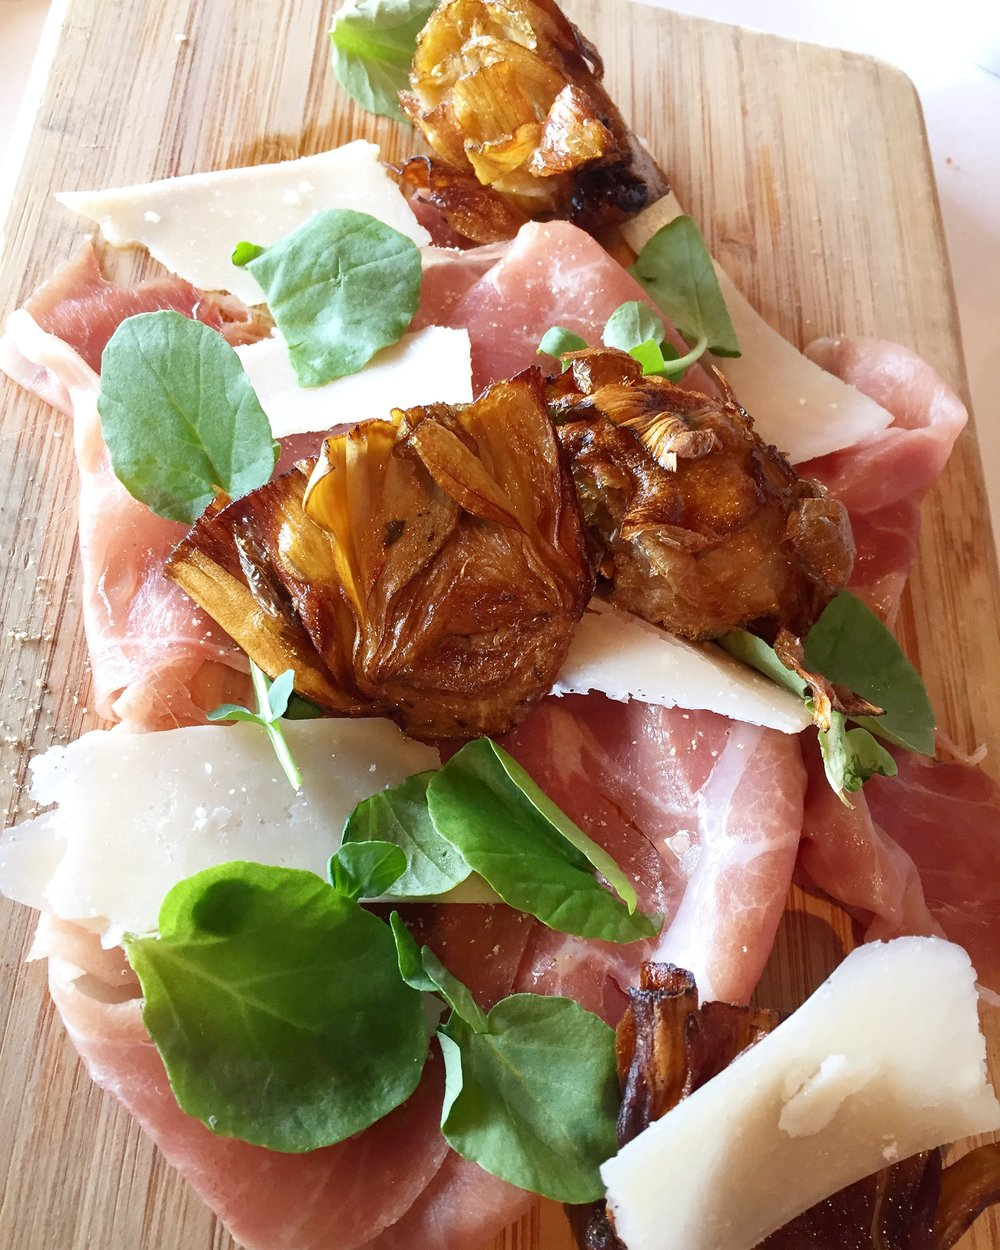 The famous  Parma Ham  with arugula, parmesan, fried baby artichokes and truffle oil. I am now in looooove with fried baby artichokes.